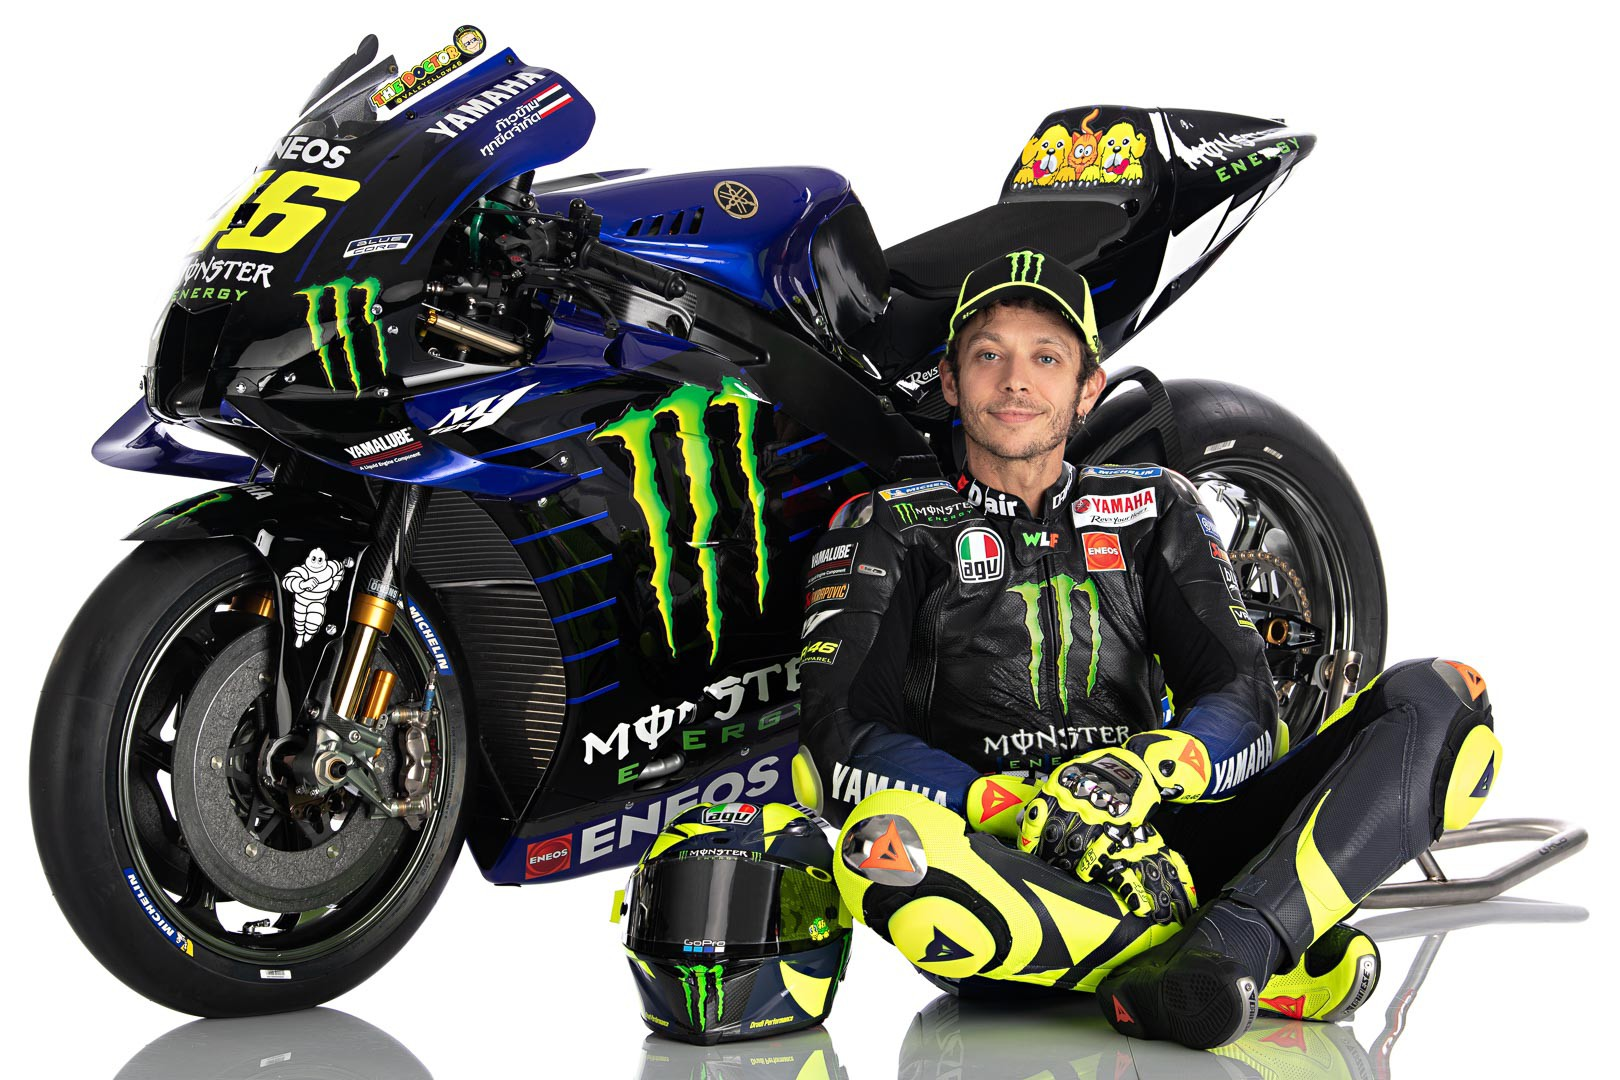 Valentino Rossi 2020 MotoGP Livery First Look Yamaha YZR M1 8